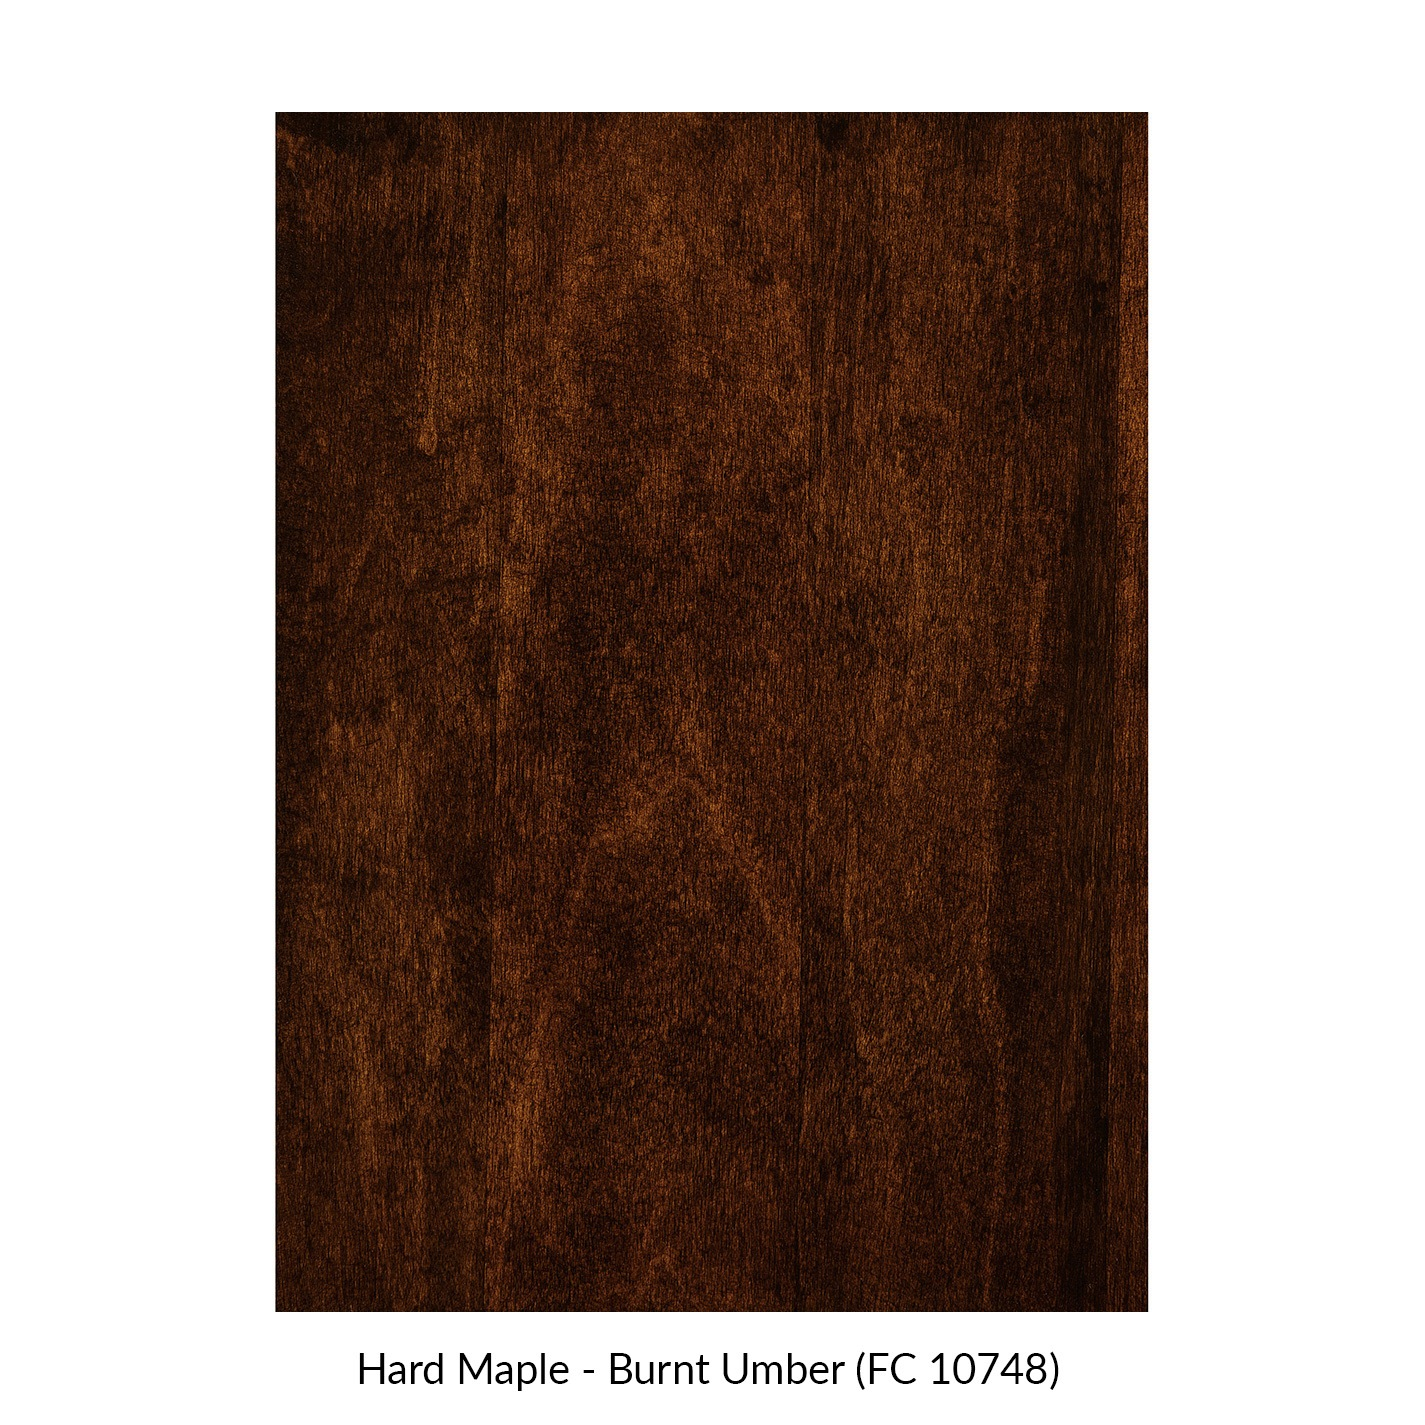 spectrum-hard-maple-burnt-umber-fc-10748.jpg